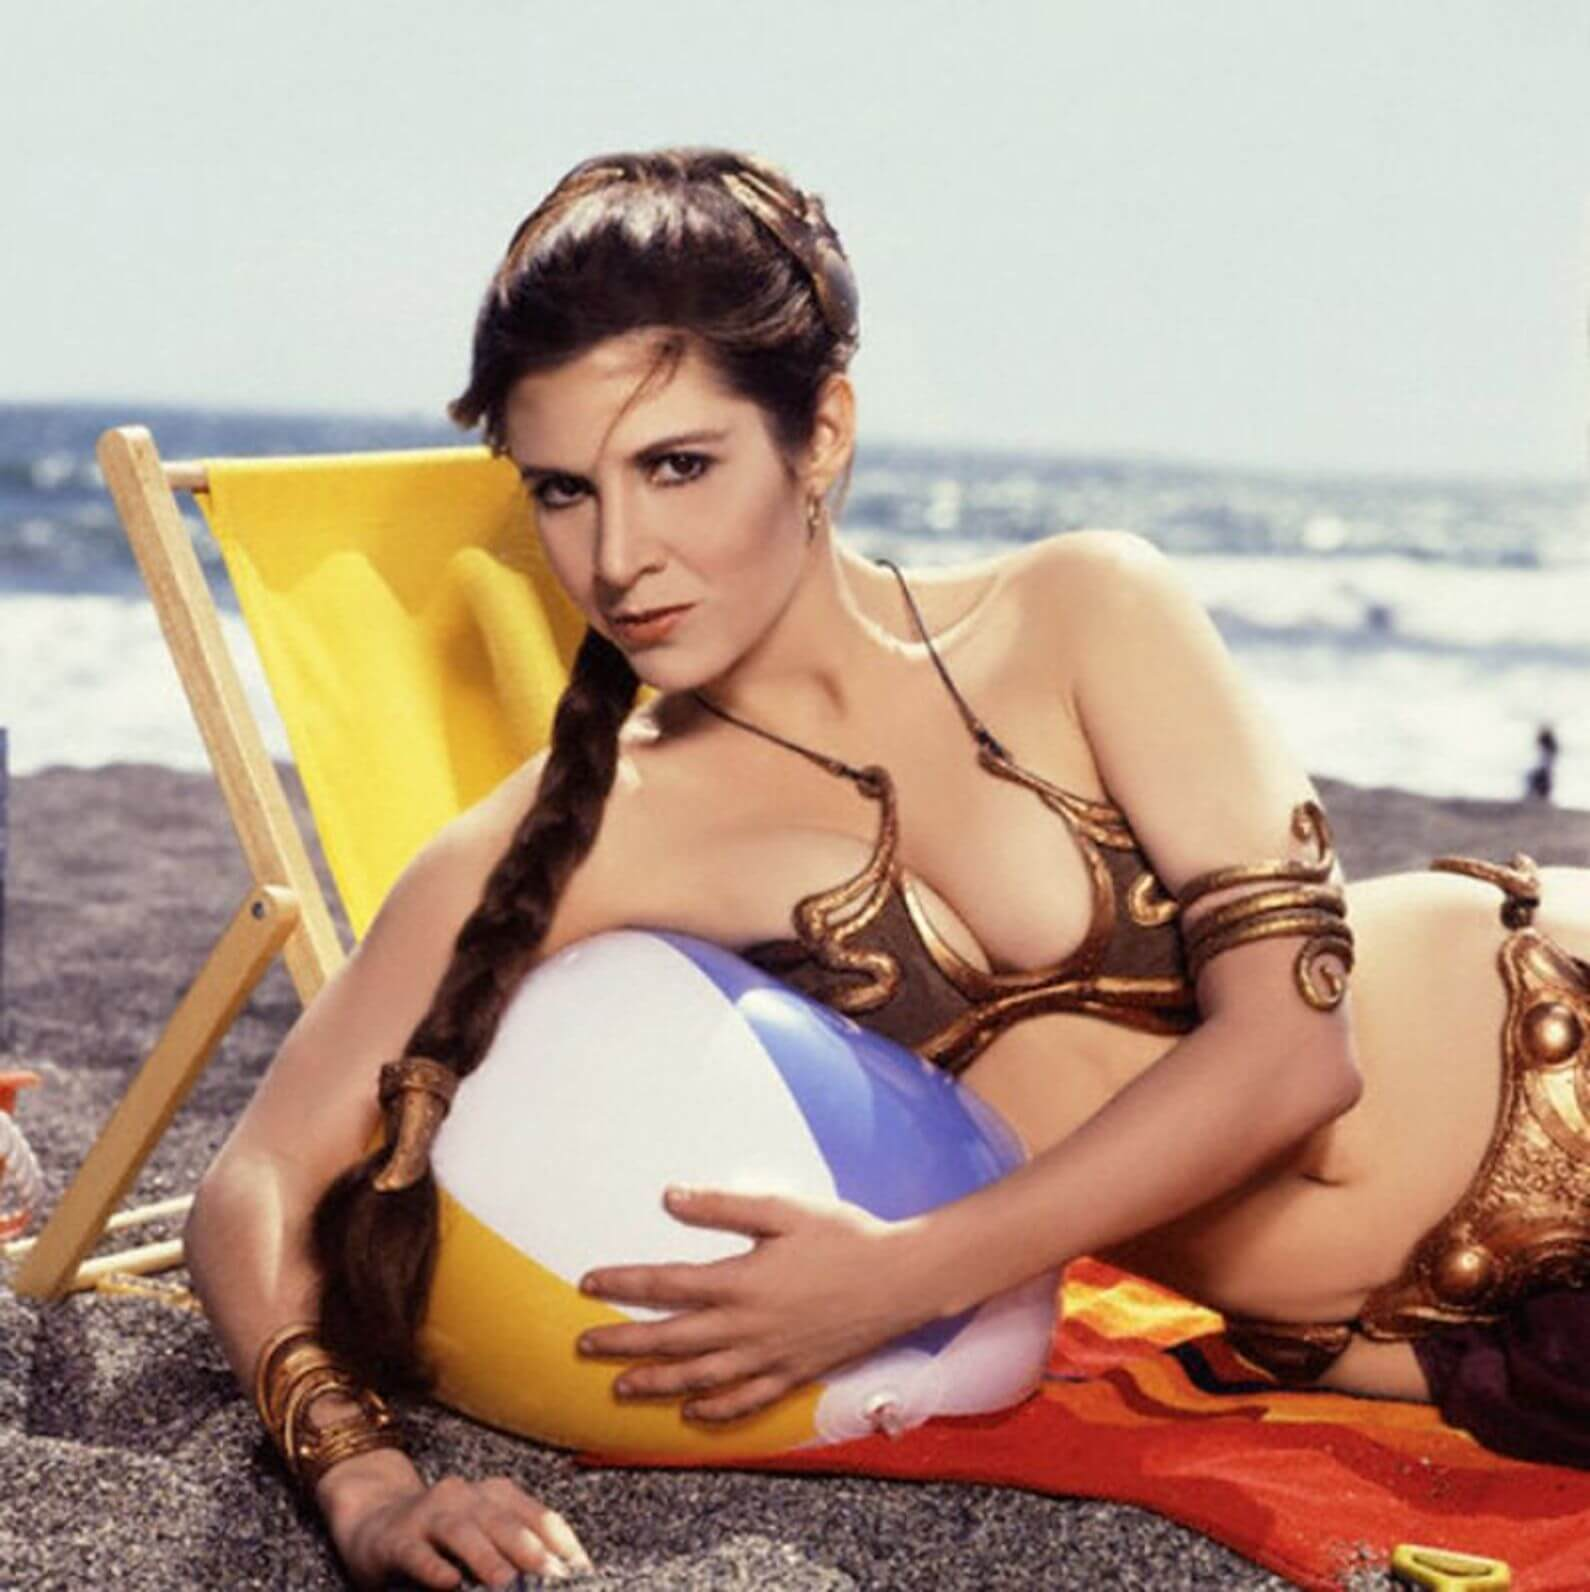 carrie fisher beach pics